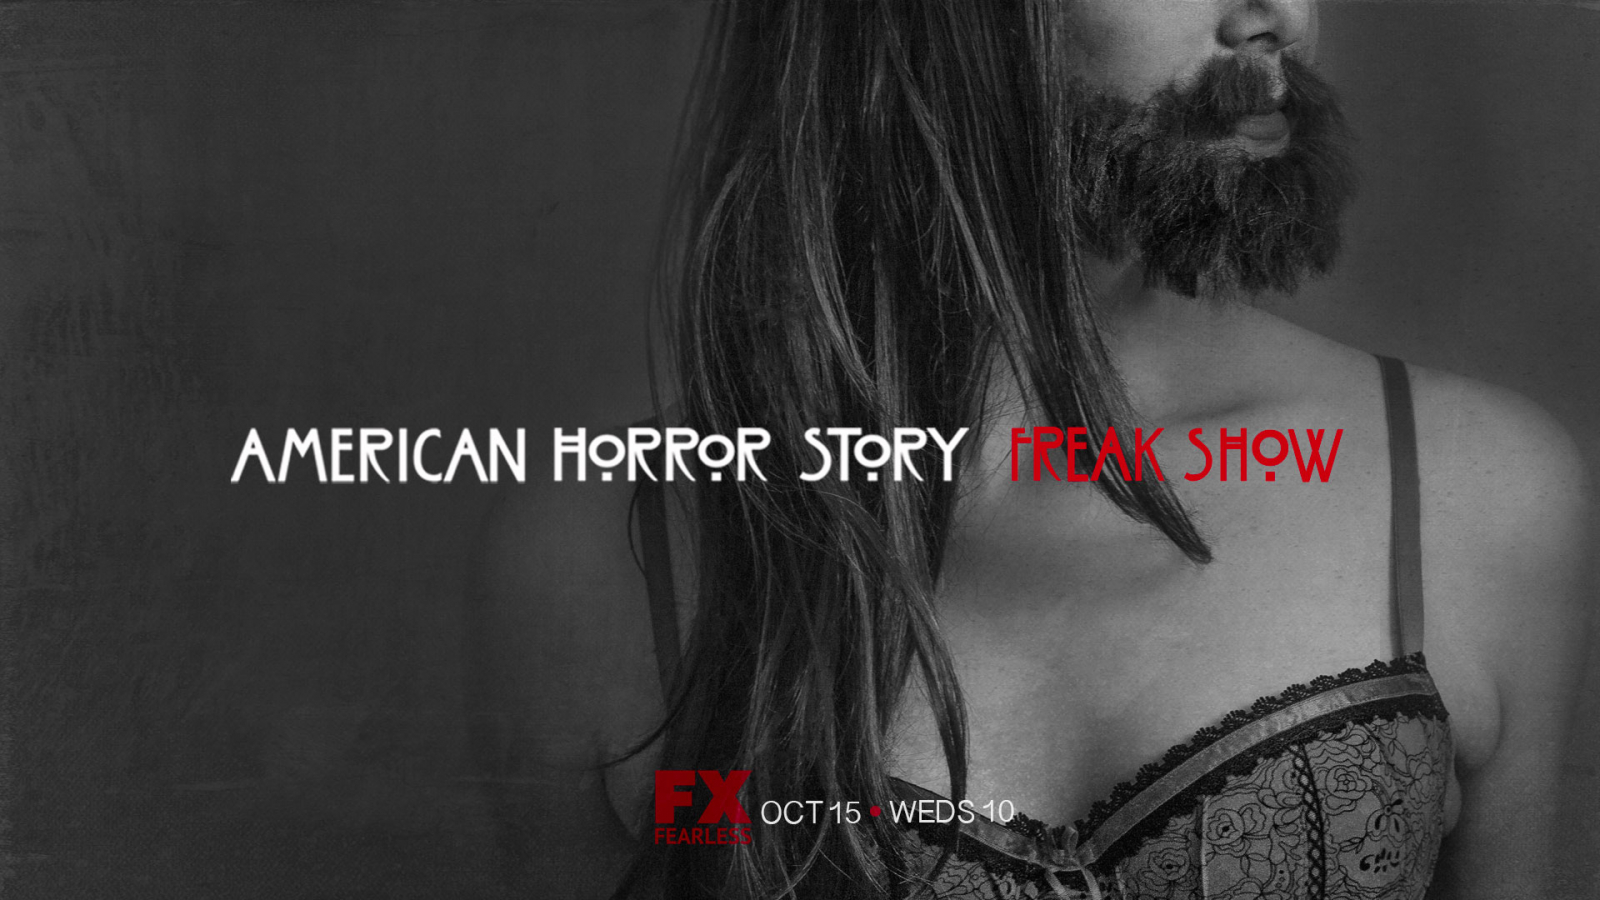 Free Download American Horror Story Freak Show Beauty Wallpaper